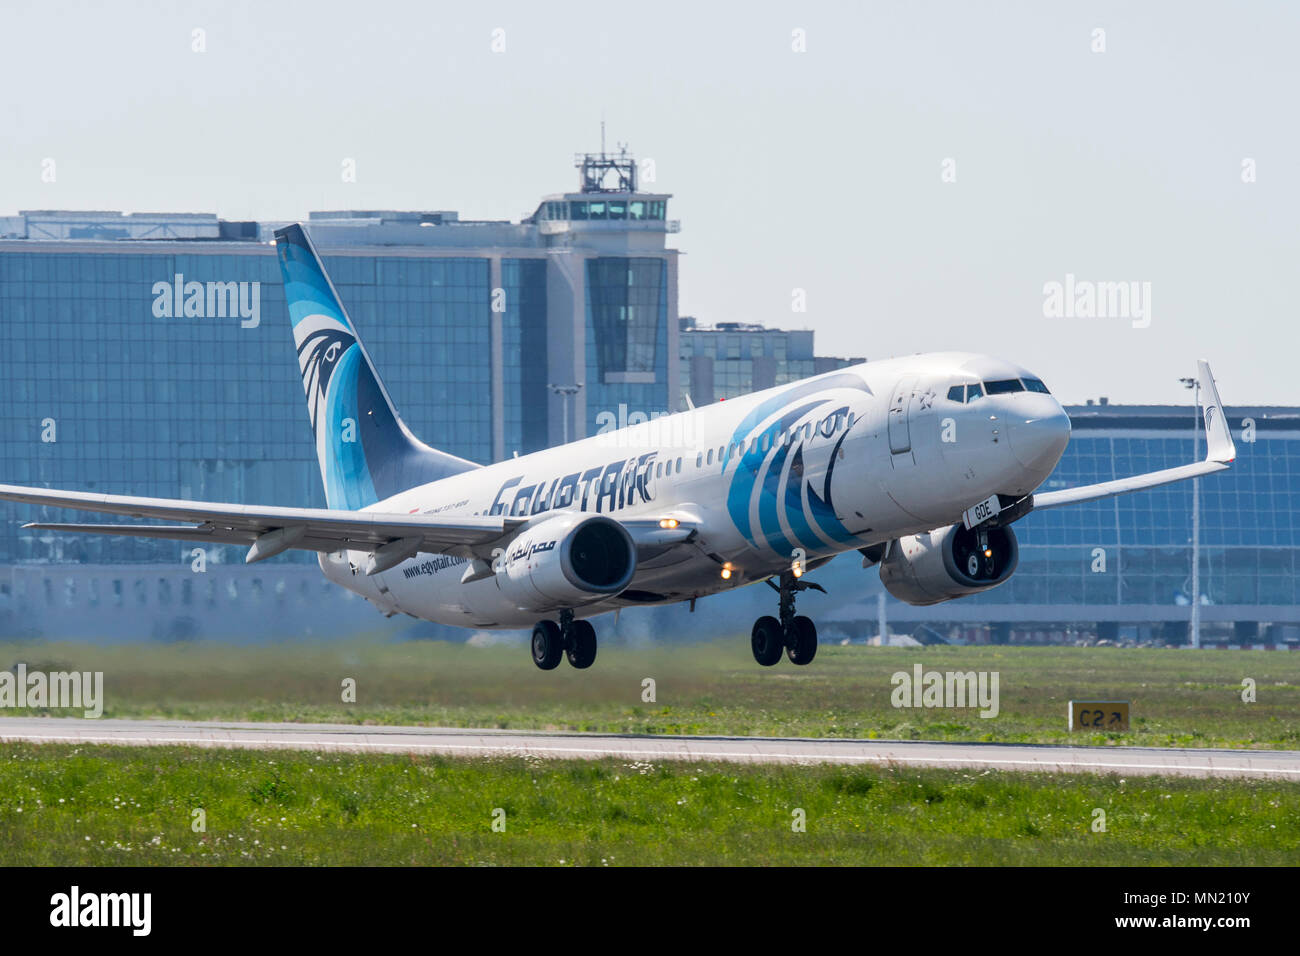 Boeing 737-800, two engine short- to medium-range, narrow-body jet airliner from EgyptAir, Egyptian airline taking off from runway - Stock Image